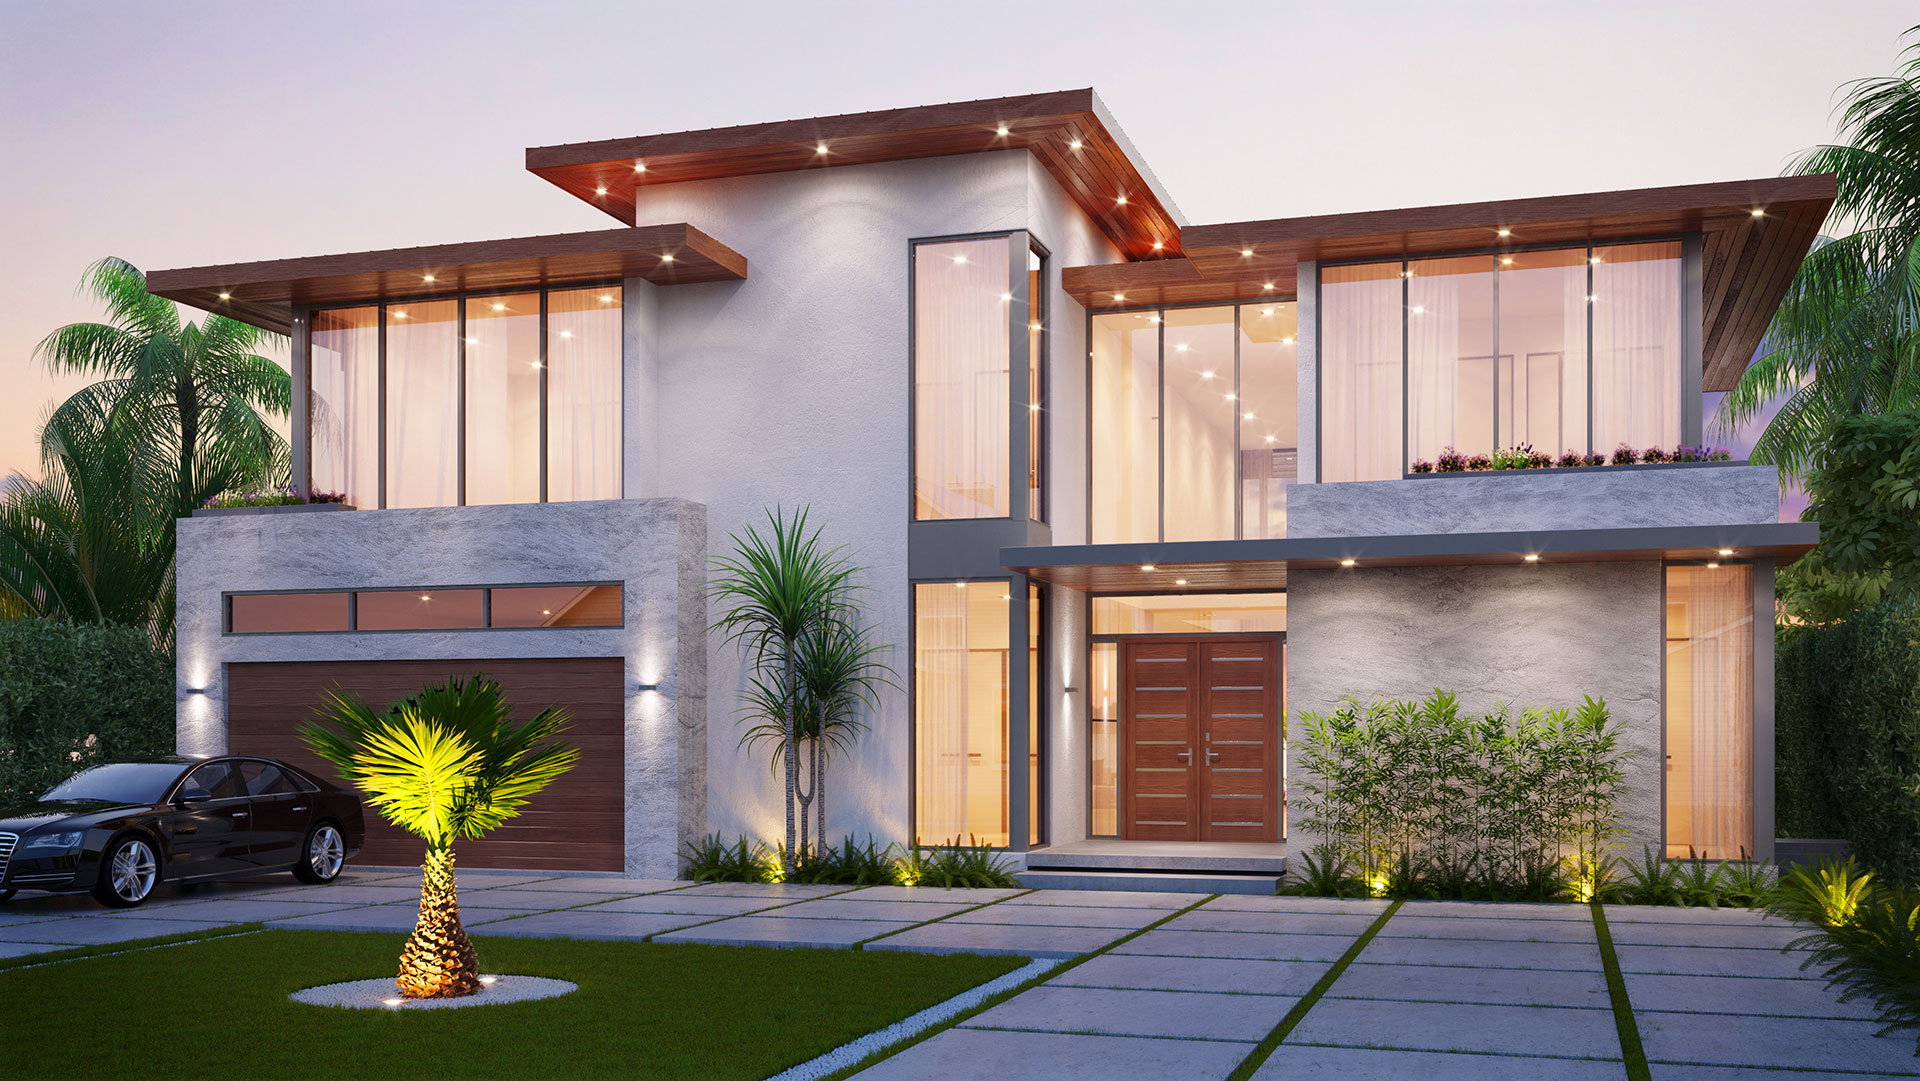 Architecture project in 1537 Fort Lauderdale